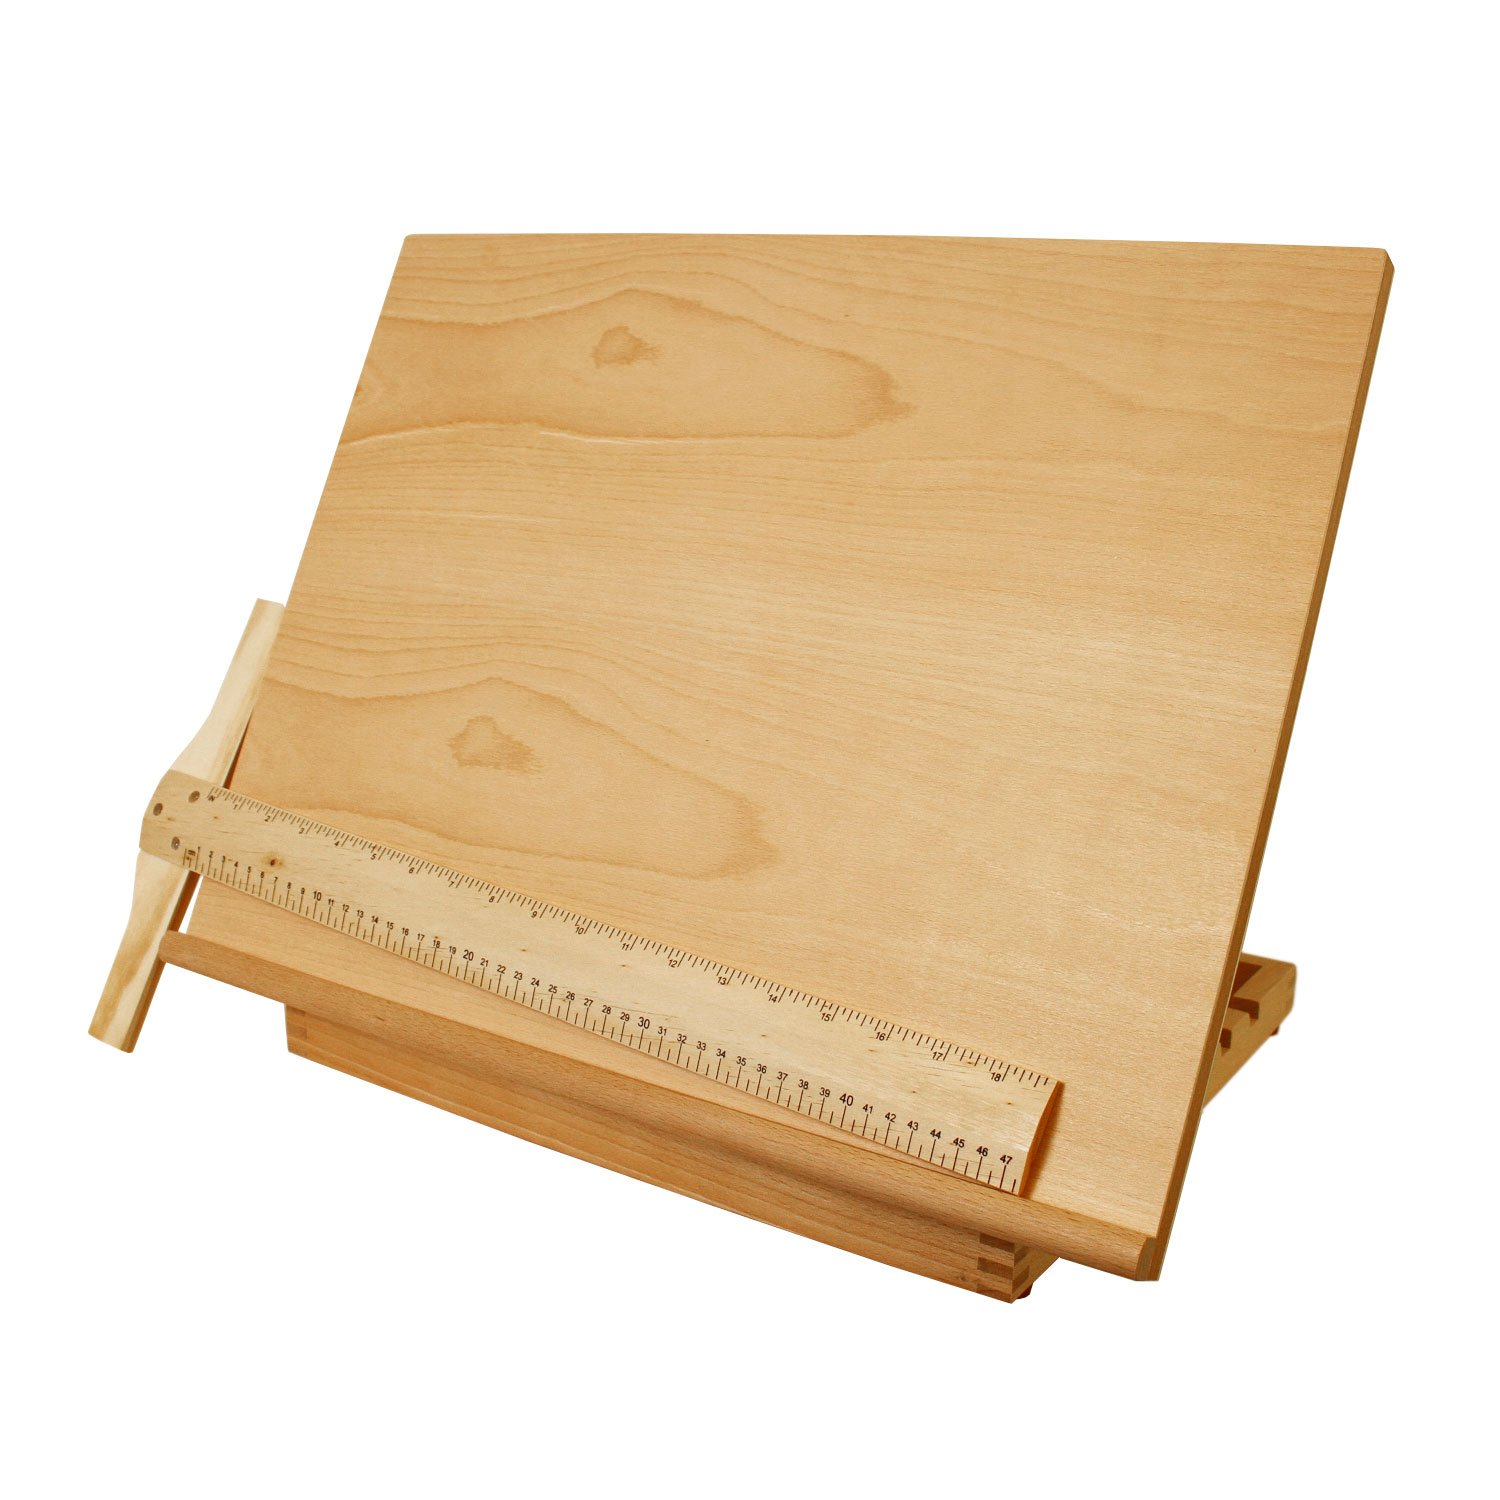 US Art Supply 5-Position Adjustable Wood Artist Drawing & Sketching Board DB-718